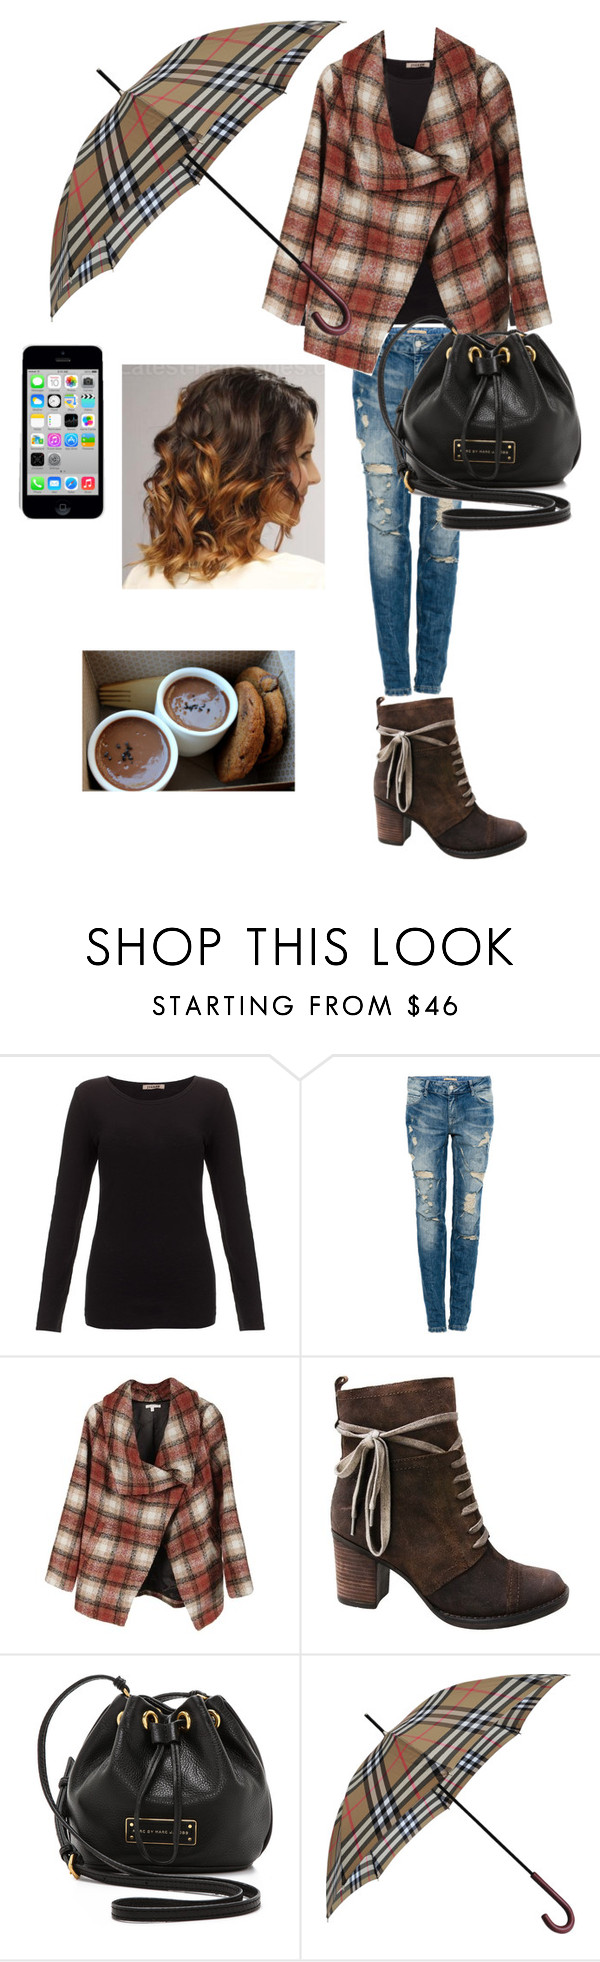 """""""Untitled #576"""" by cheresh ❤ liked on Polyvore featuring Jigsaw, Pull&Bear, Miz Mooz, Marc by Marc Jacobs and Burberry"""